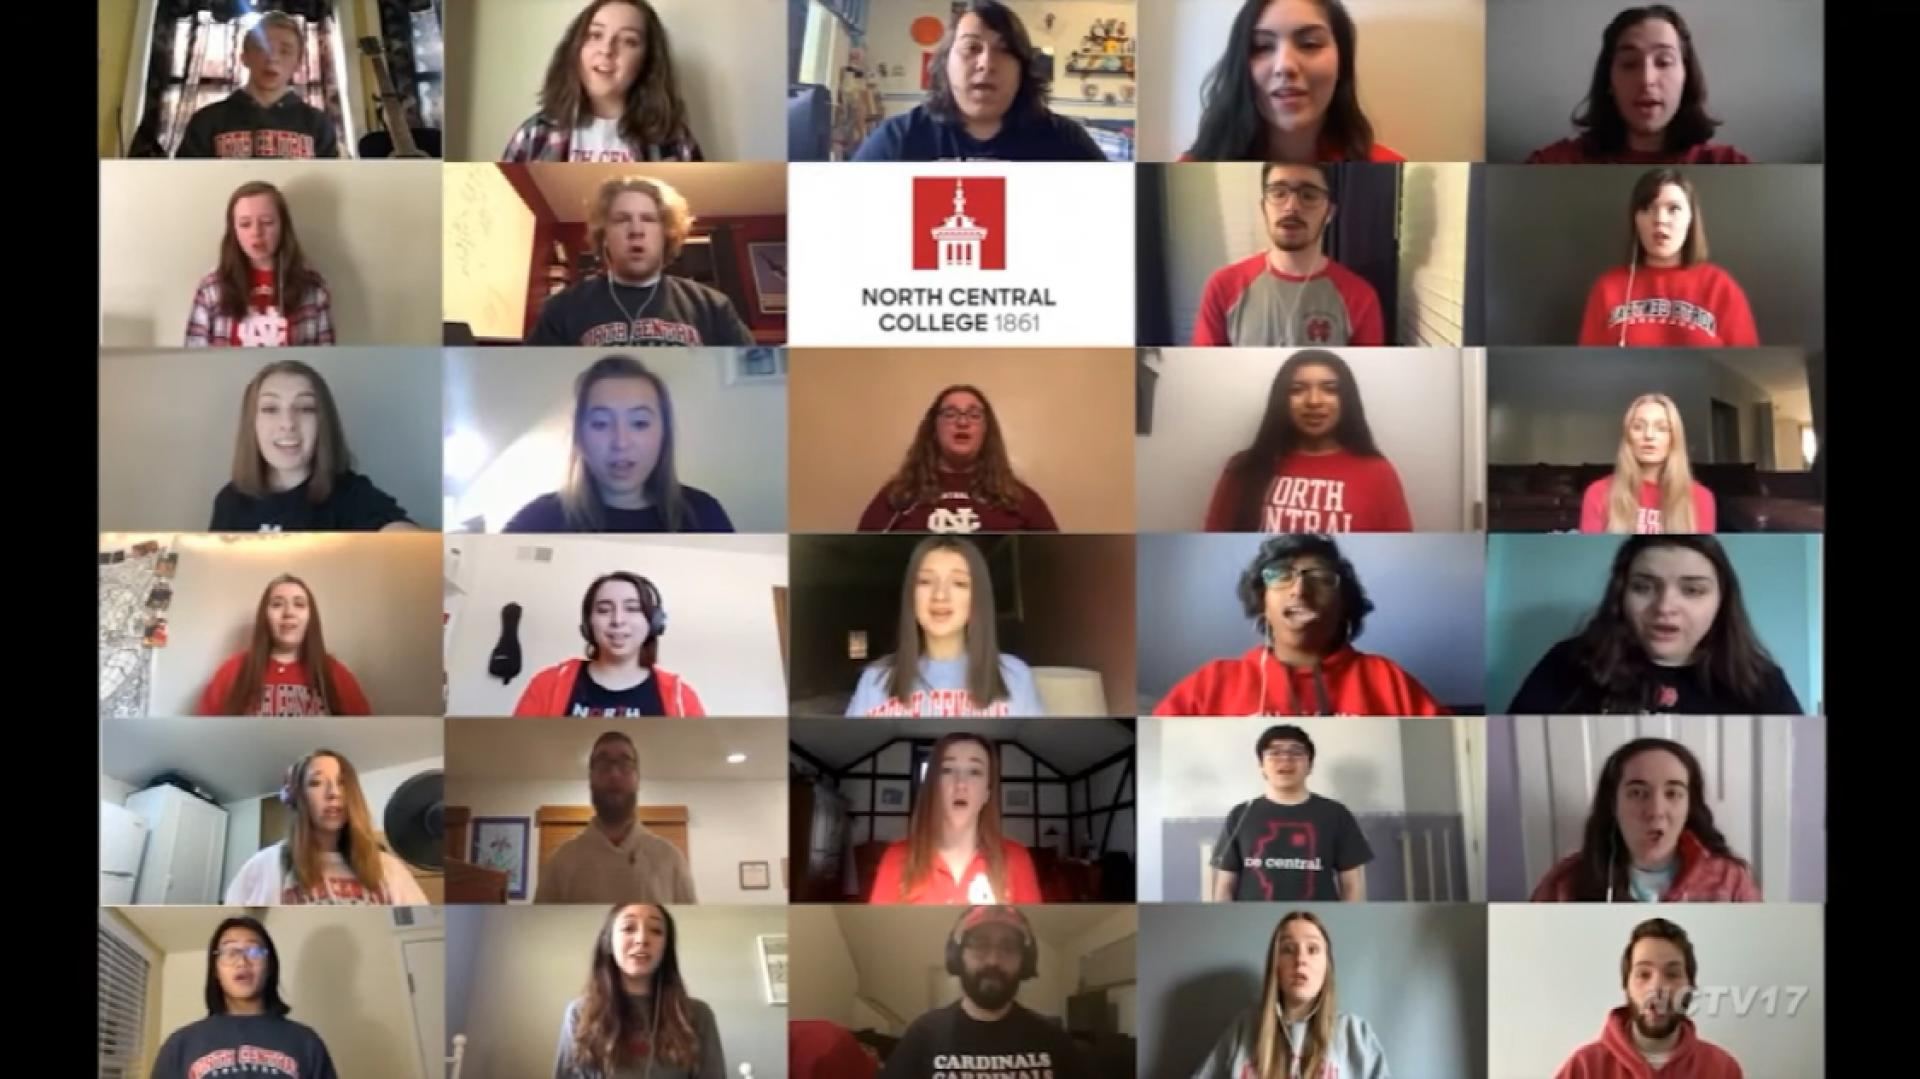 North Central's virtual choir performs the College alma mater.